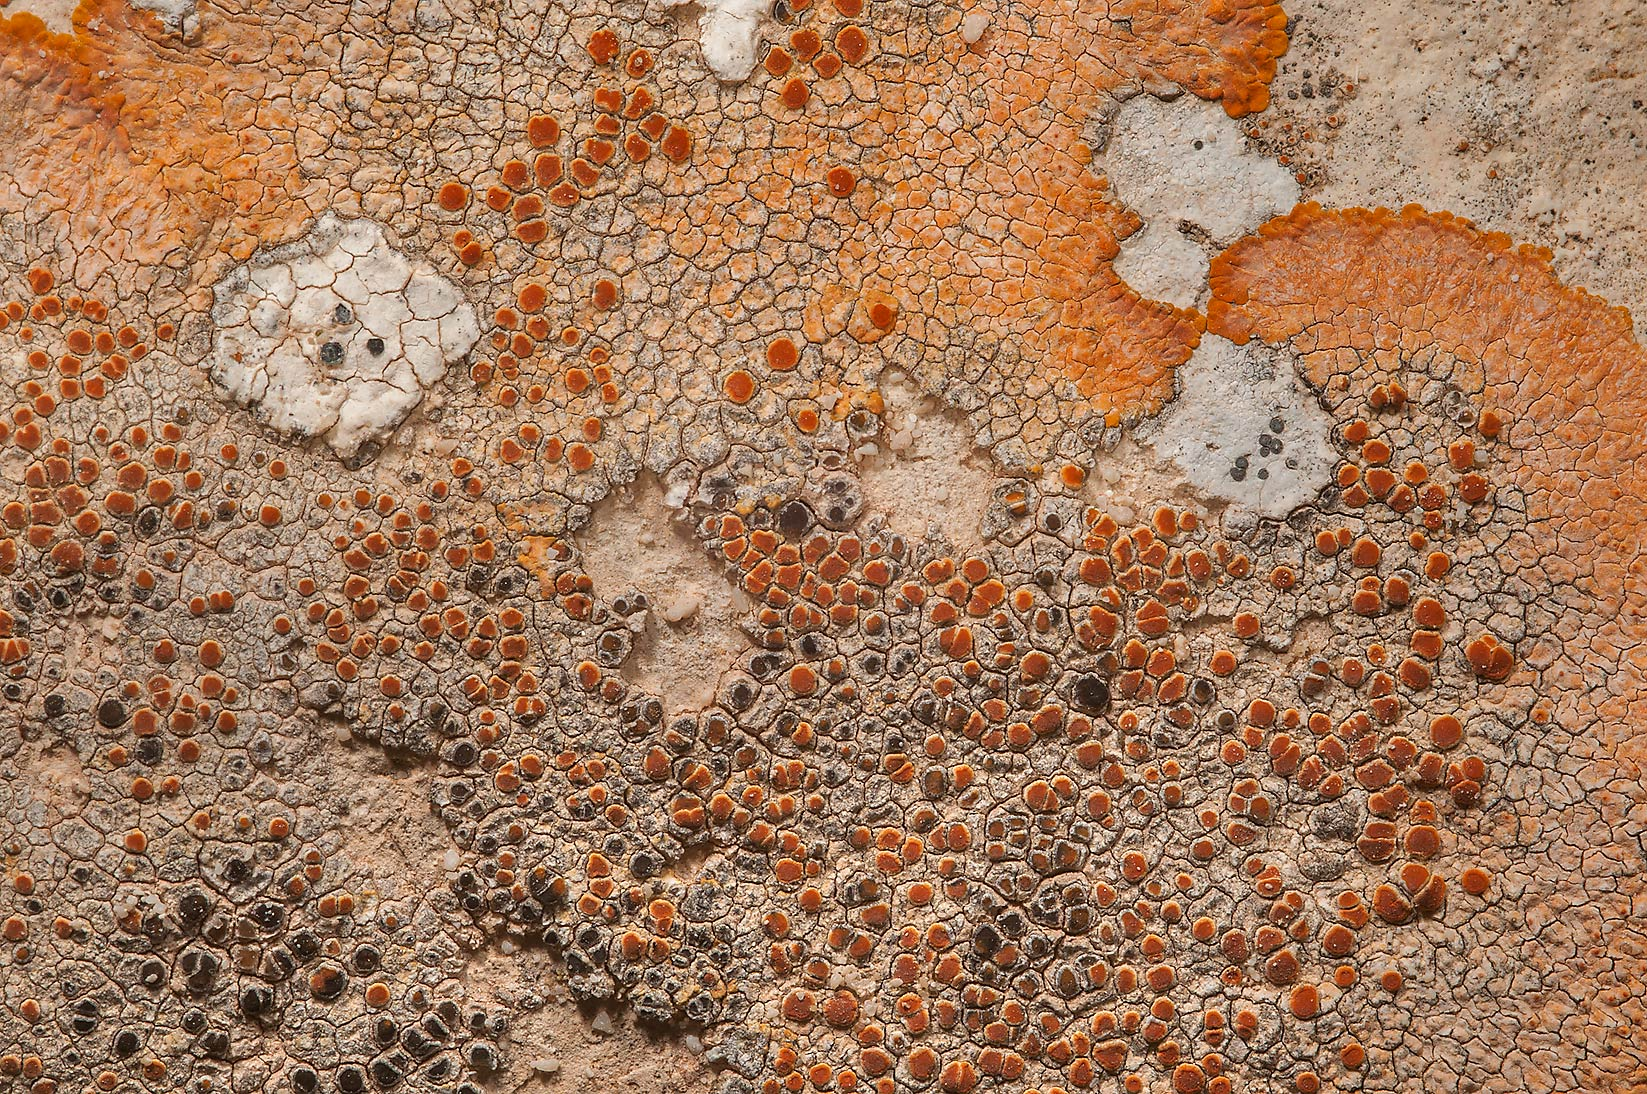 Golden crustose lichen Caloplaca aurantia on a...of Ras Laffan, north from Doha. Qatar